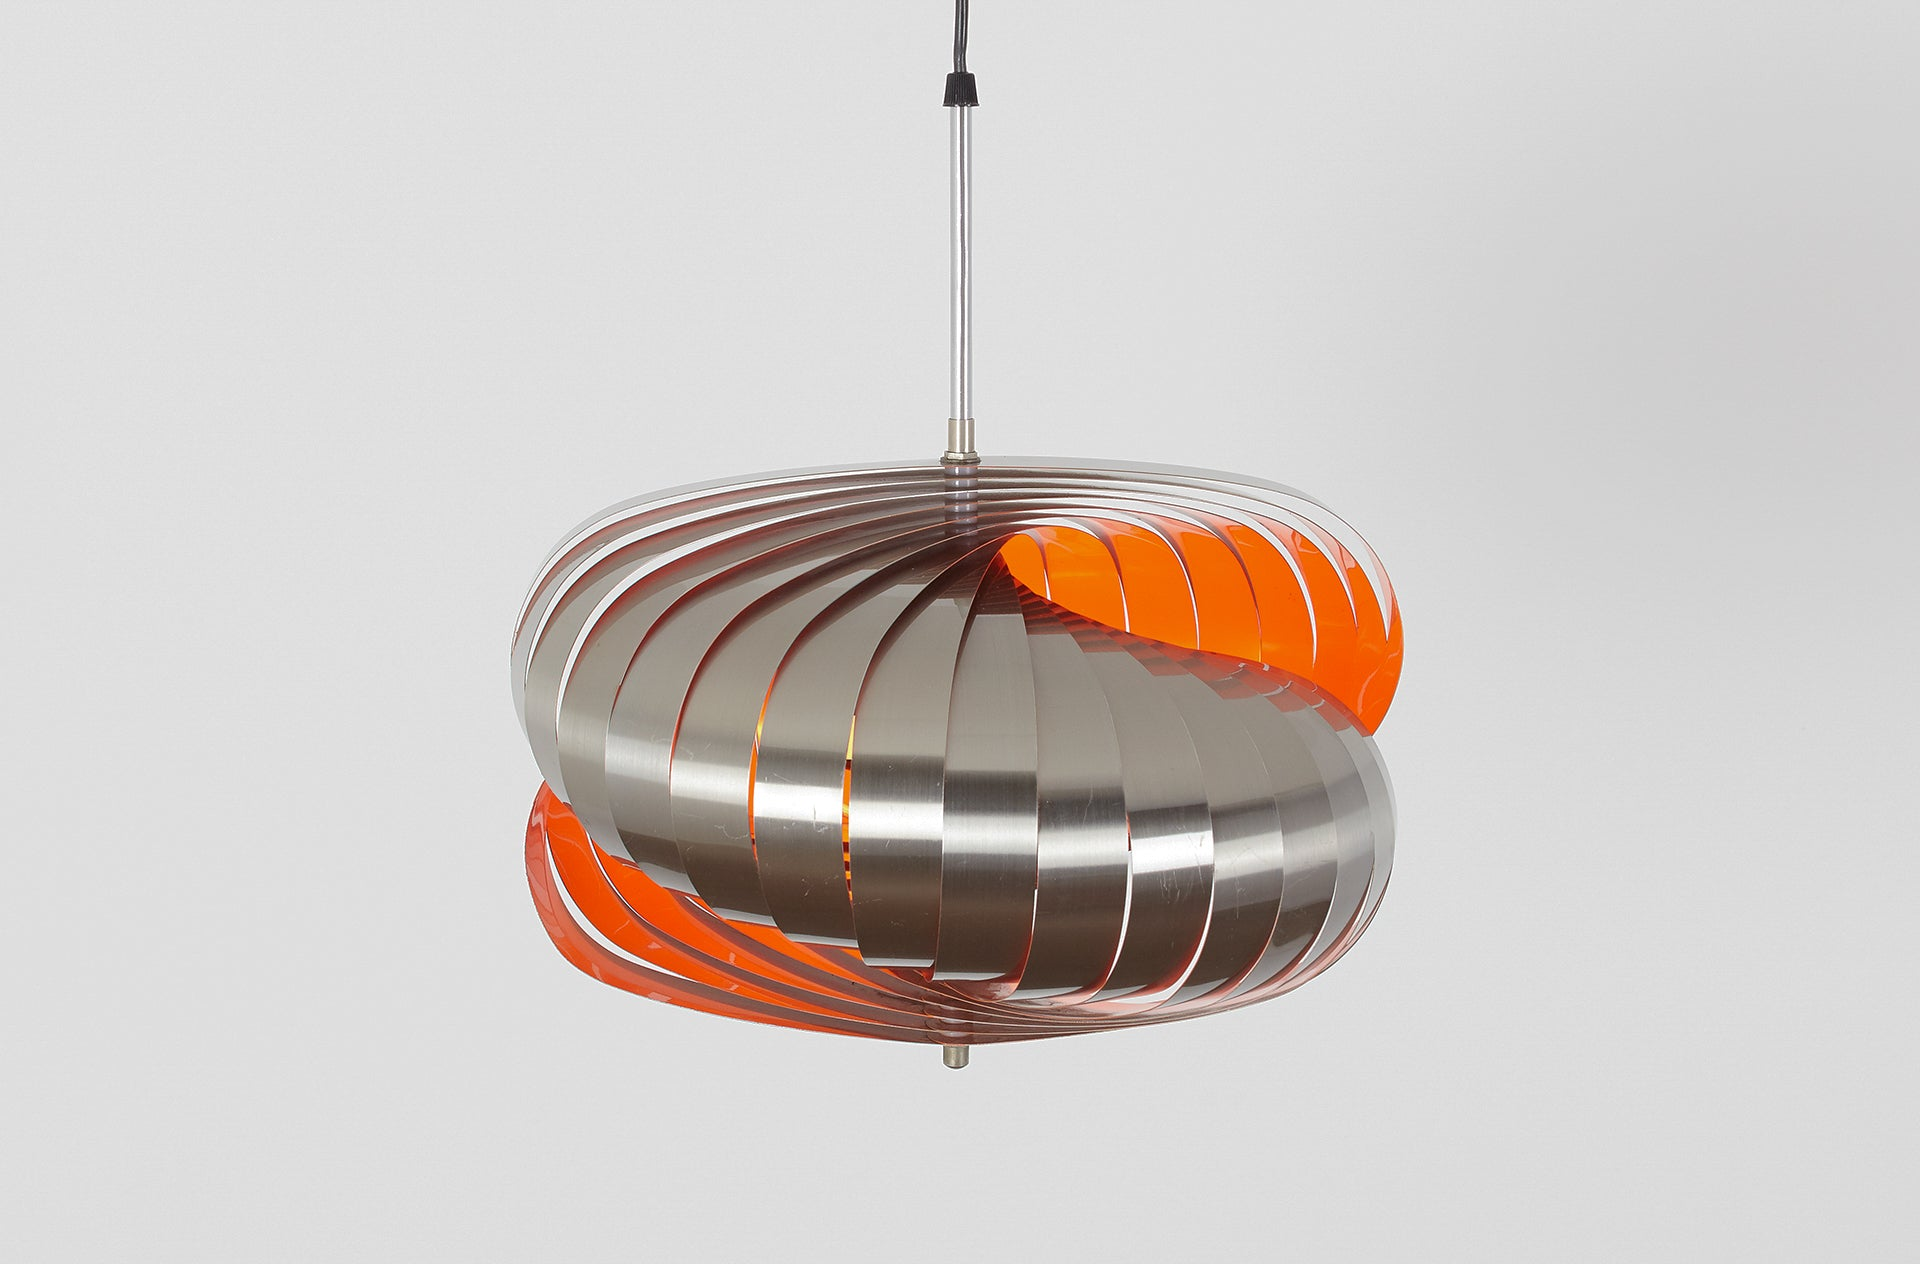 TWIRLING PENDANT BY HENRI MATHIEU